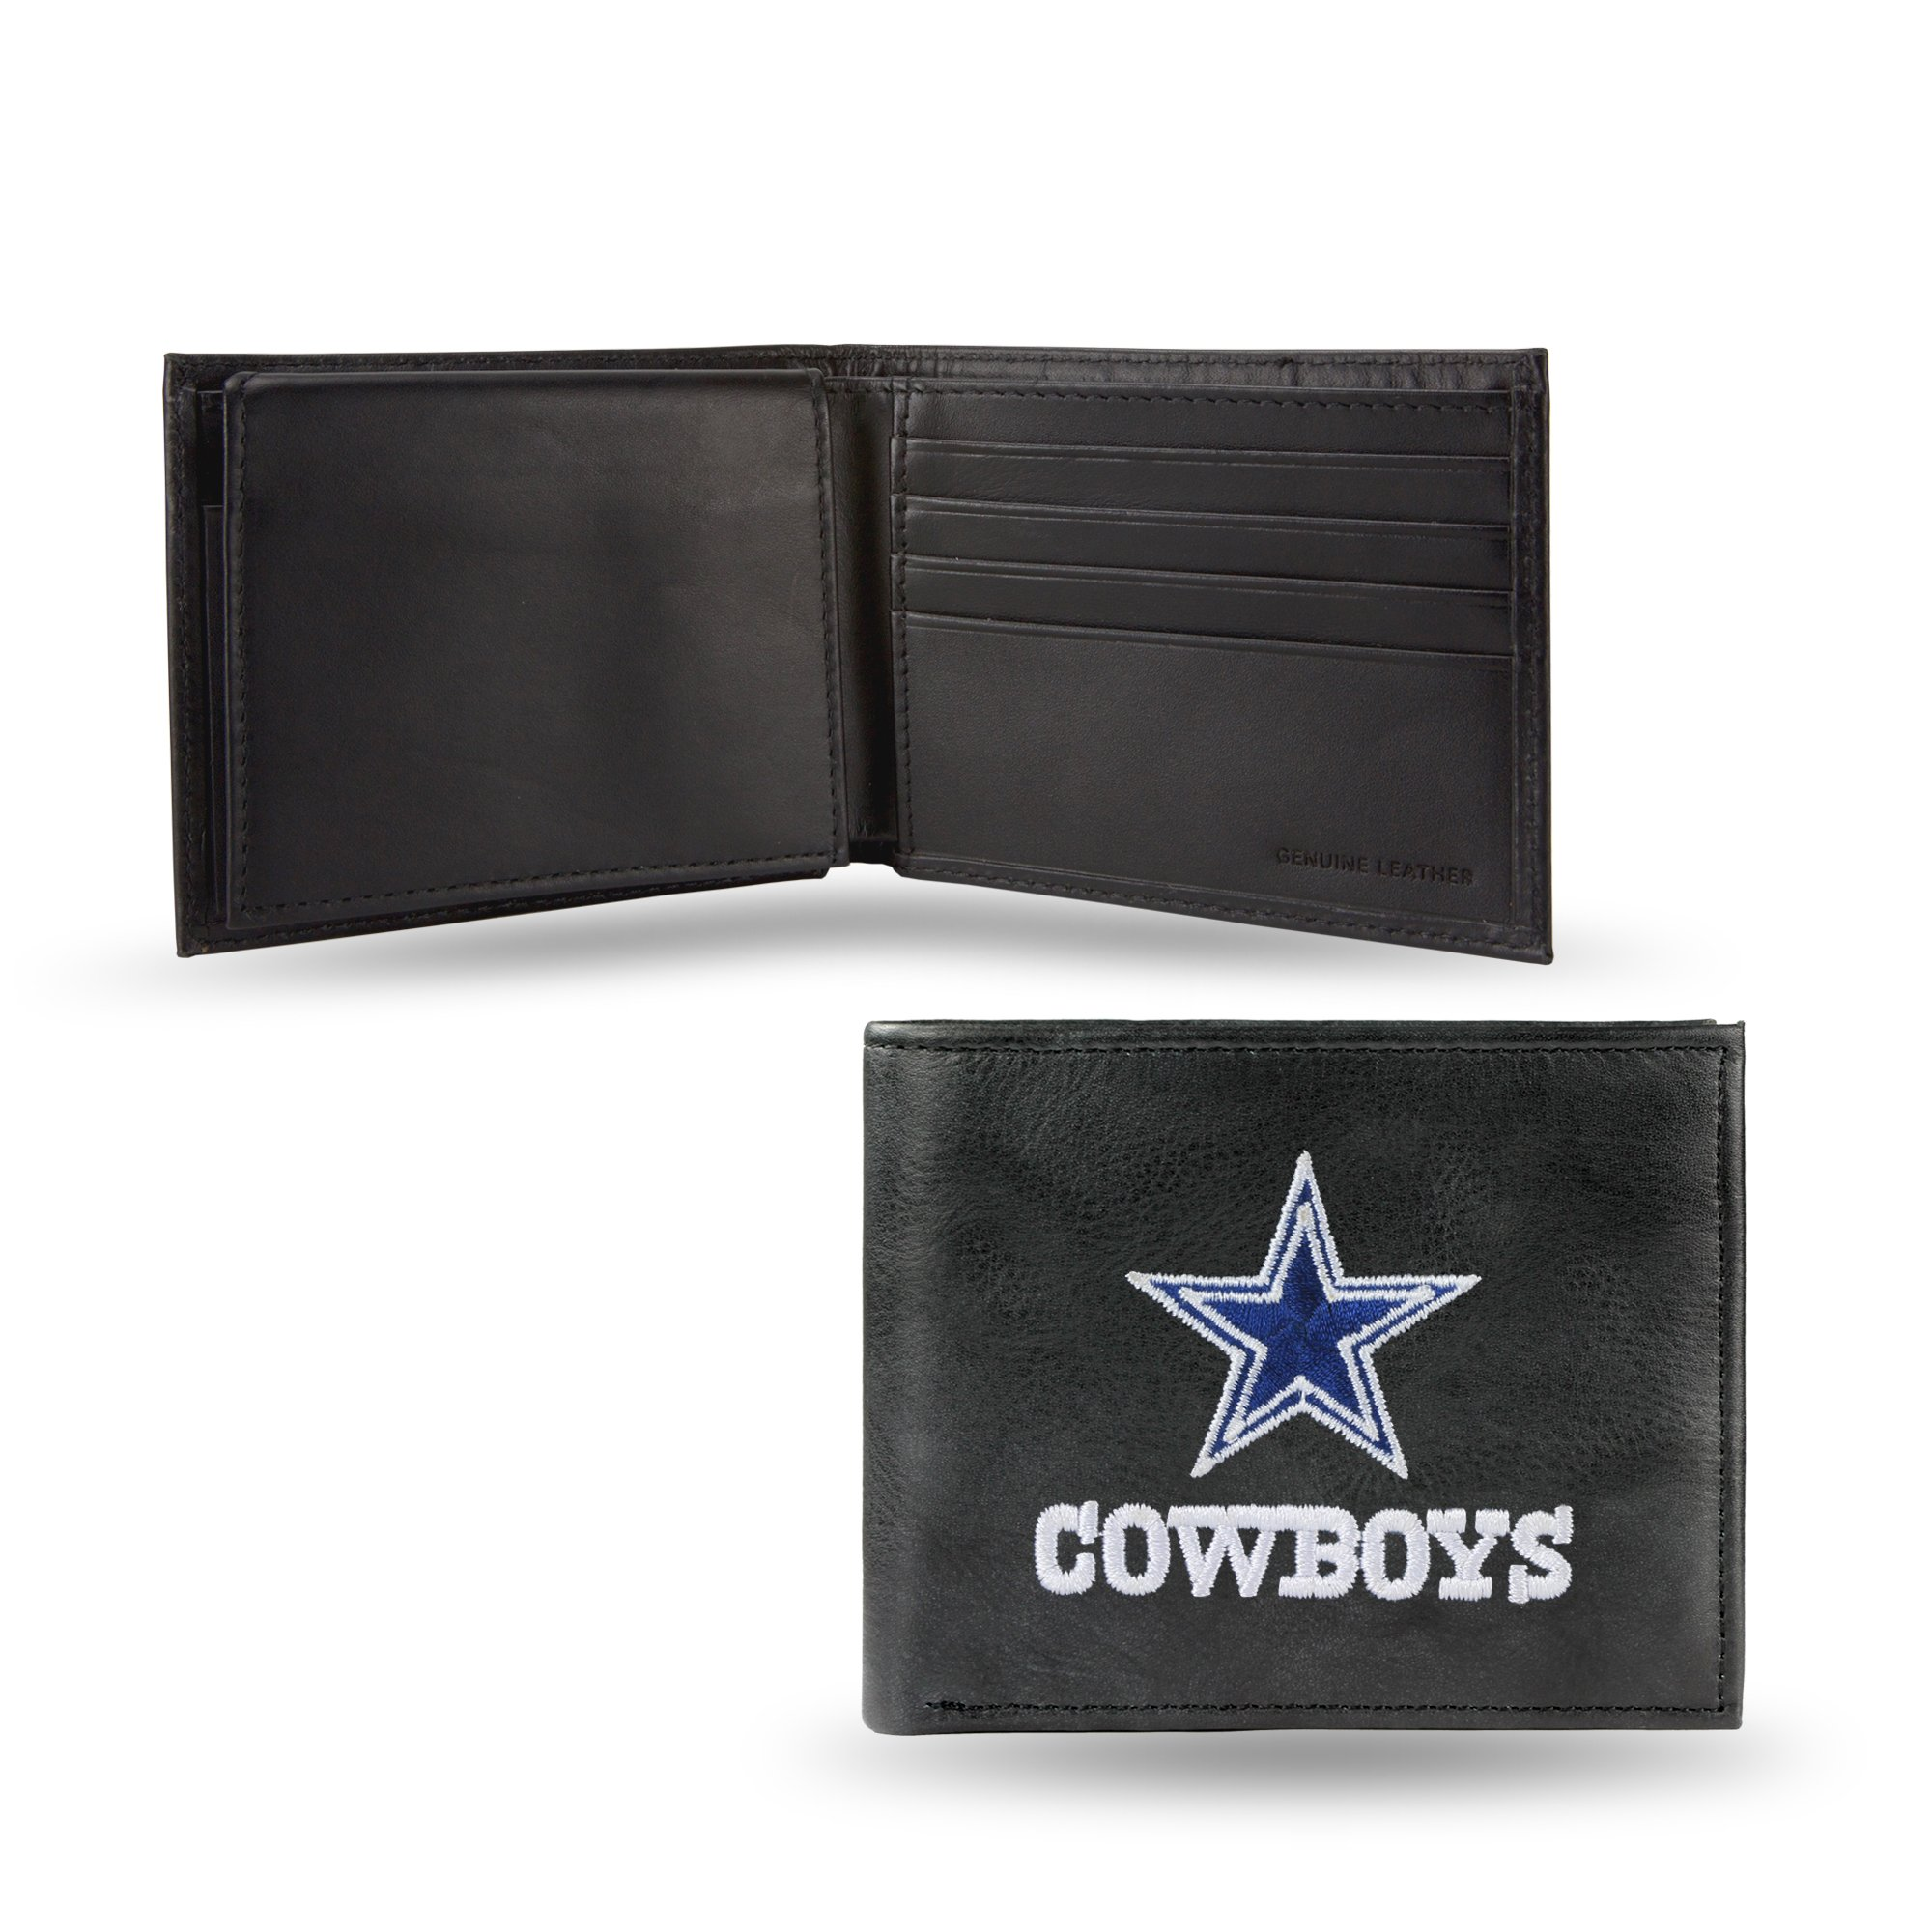 NFL Dallas Cowboys Embroidered Leather Billfold Wallet